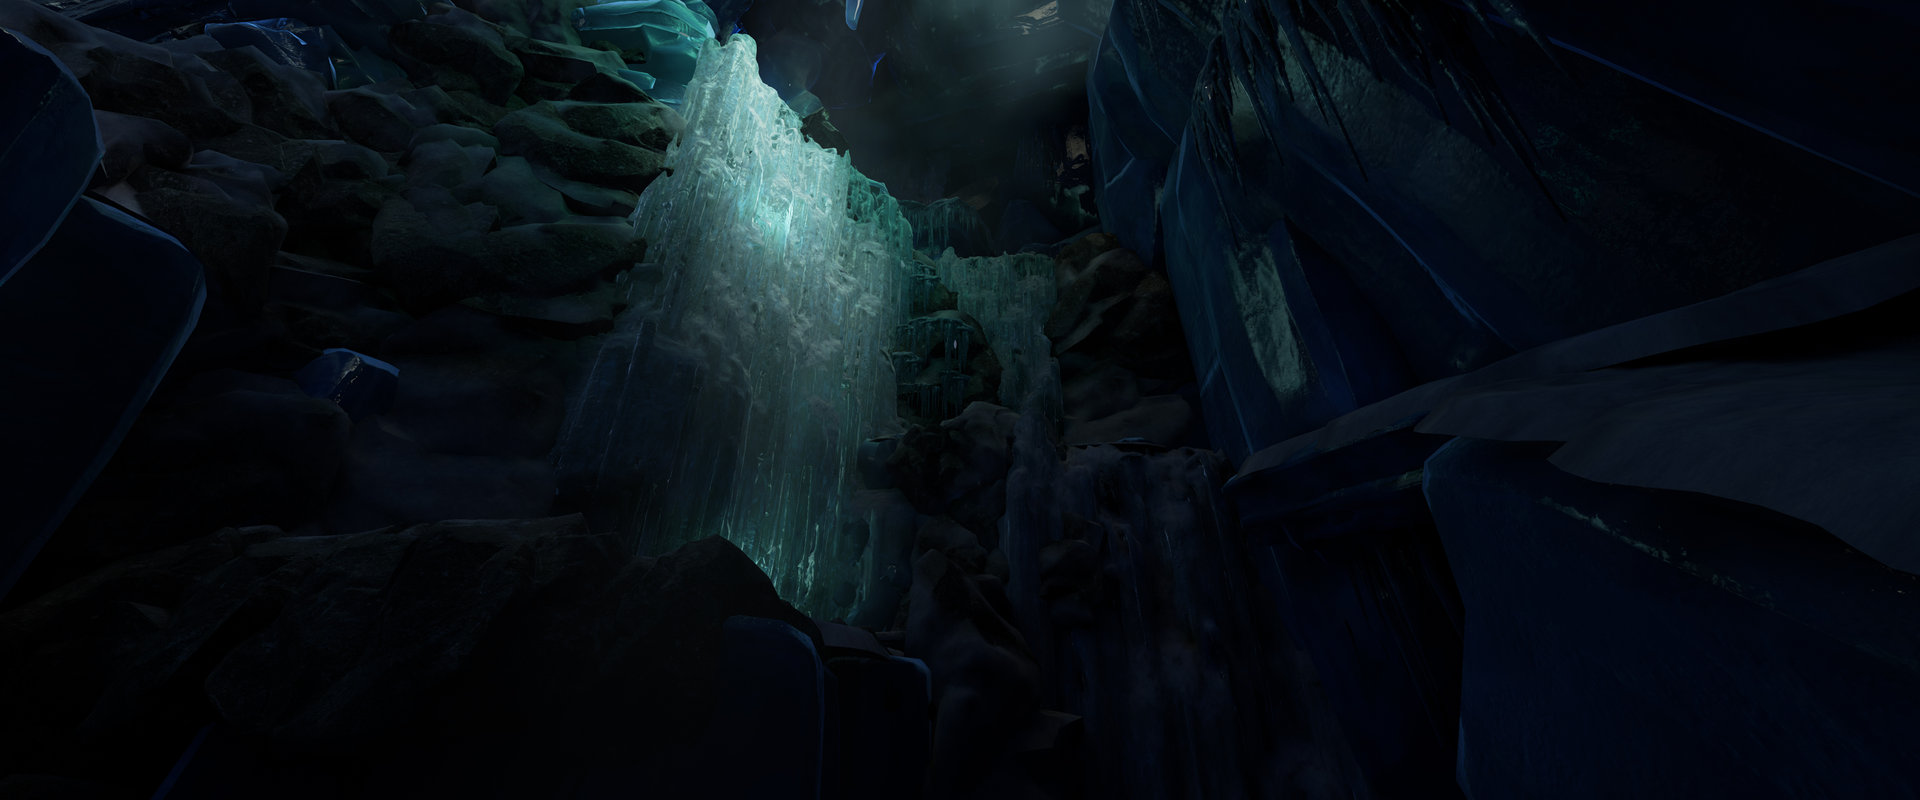 Level art, Light artist, Modelling rocks and Frozen fall